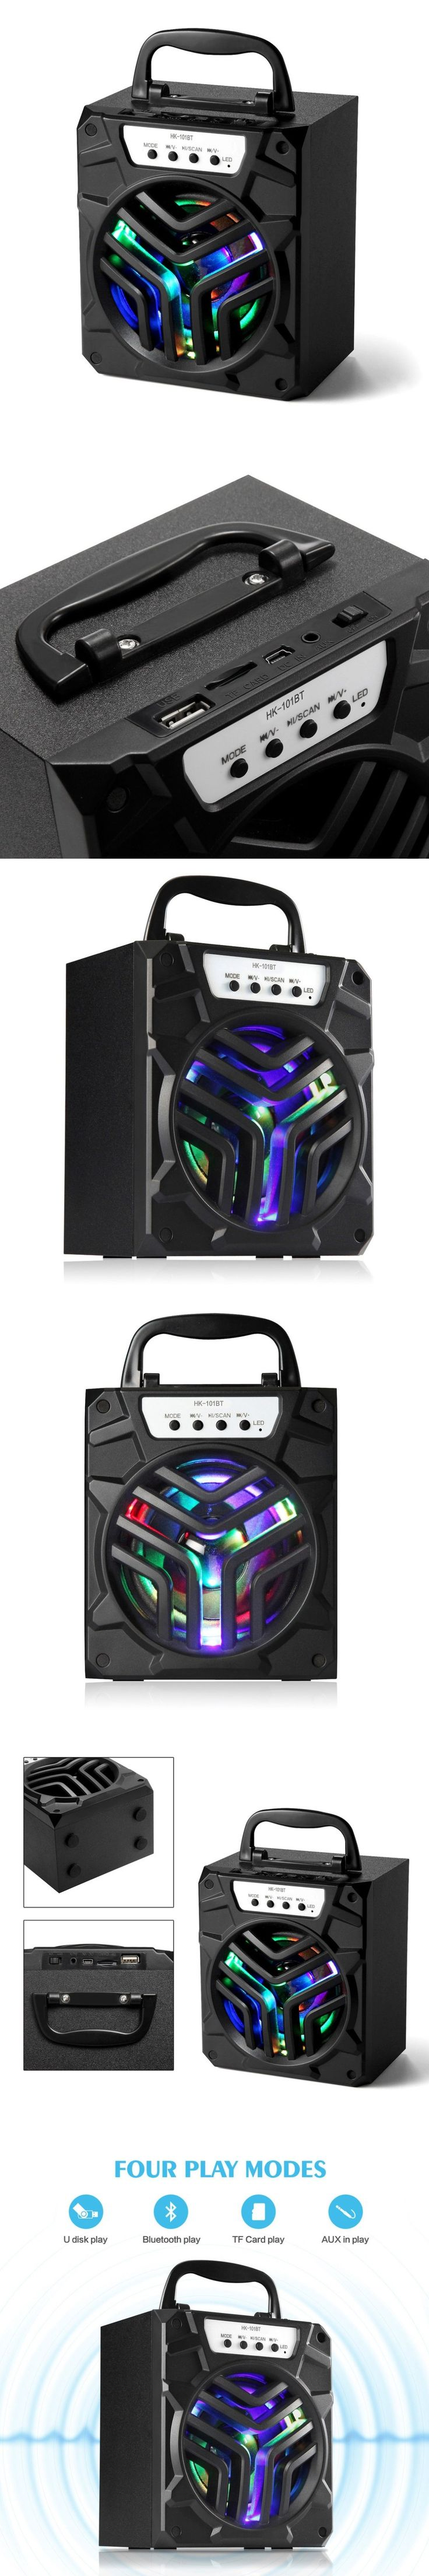 Outdoor Audio PC Speaker Portable With 64GB Wireless Bluetooth SpeakerSupport Bluetooth/USB/TF CARD/AUX Play Mode LED Indicating